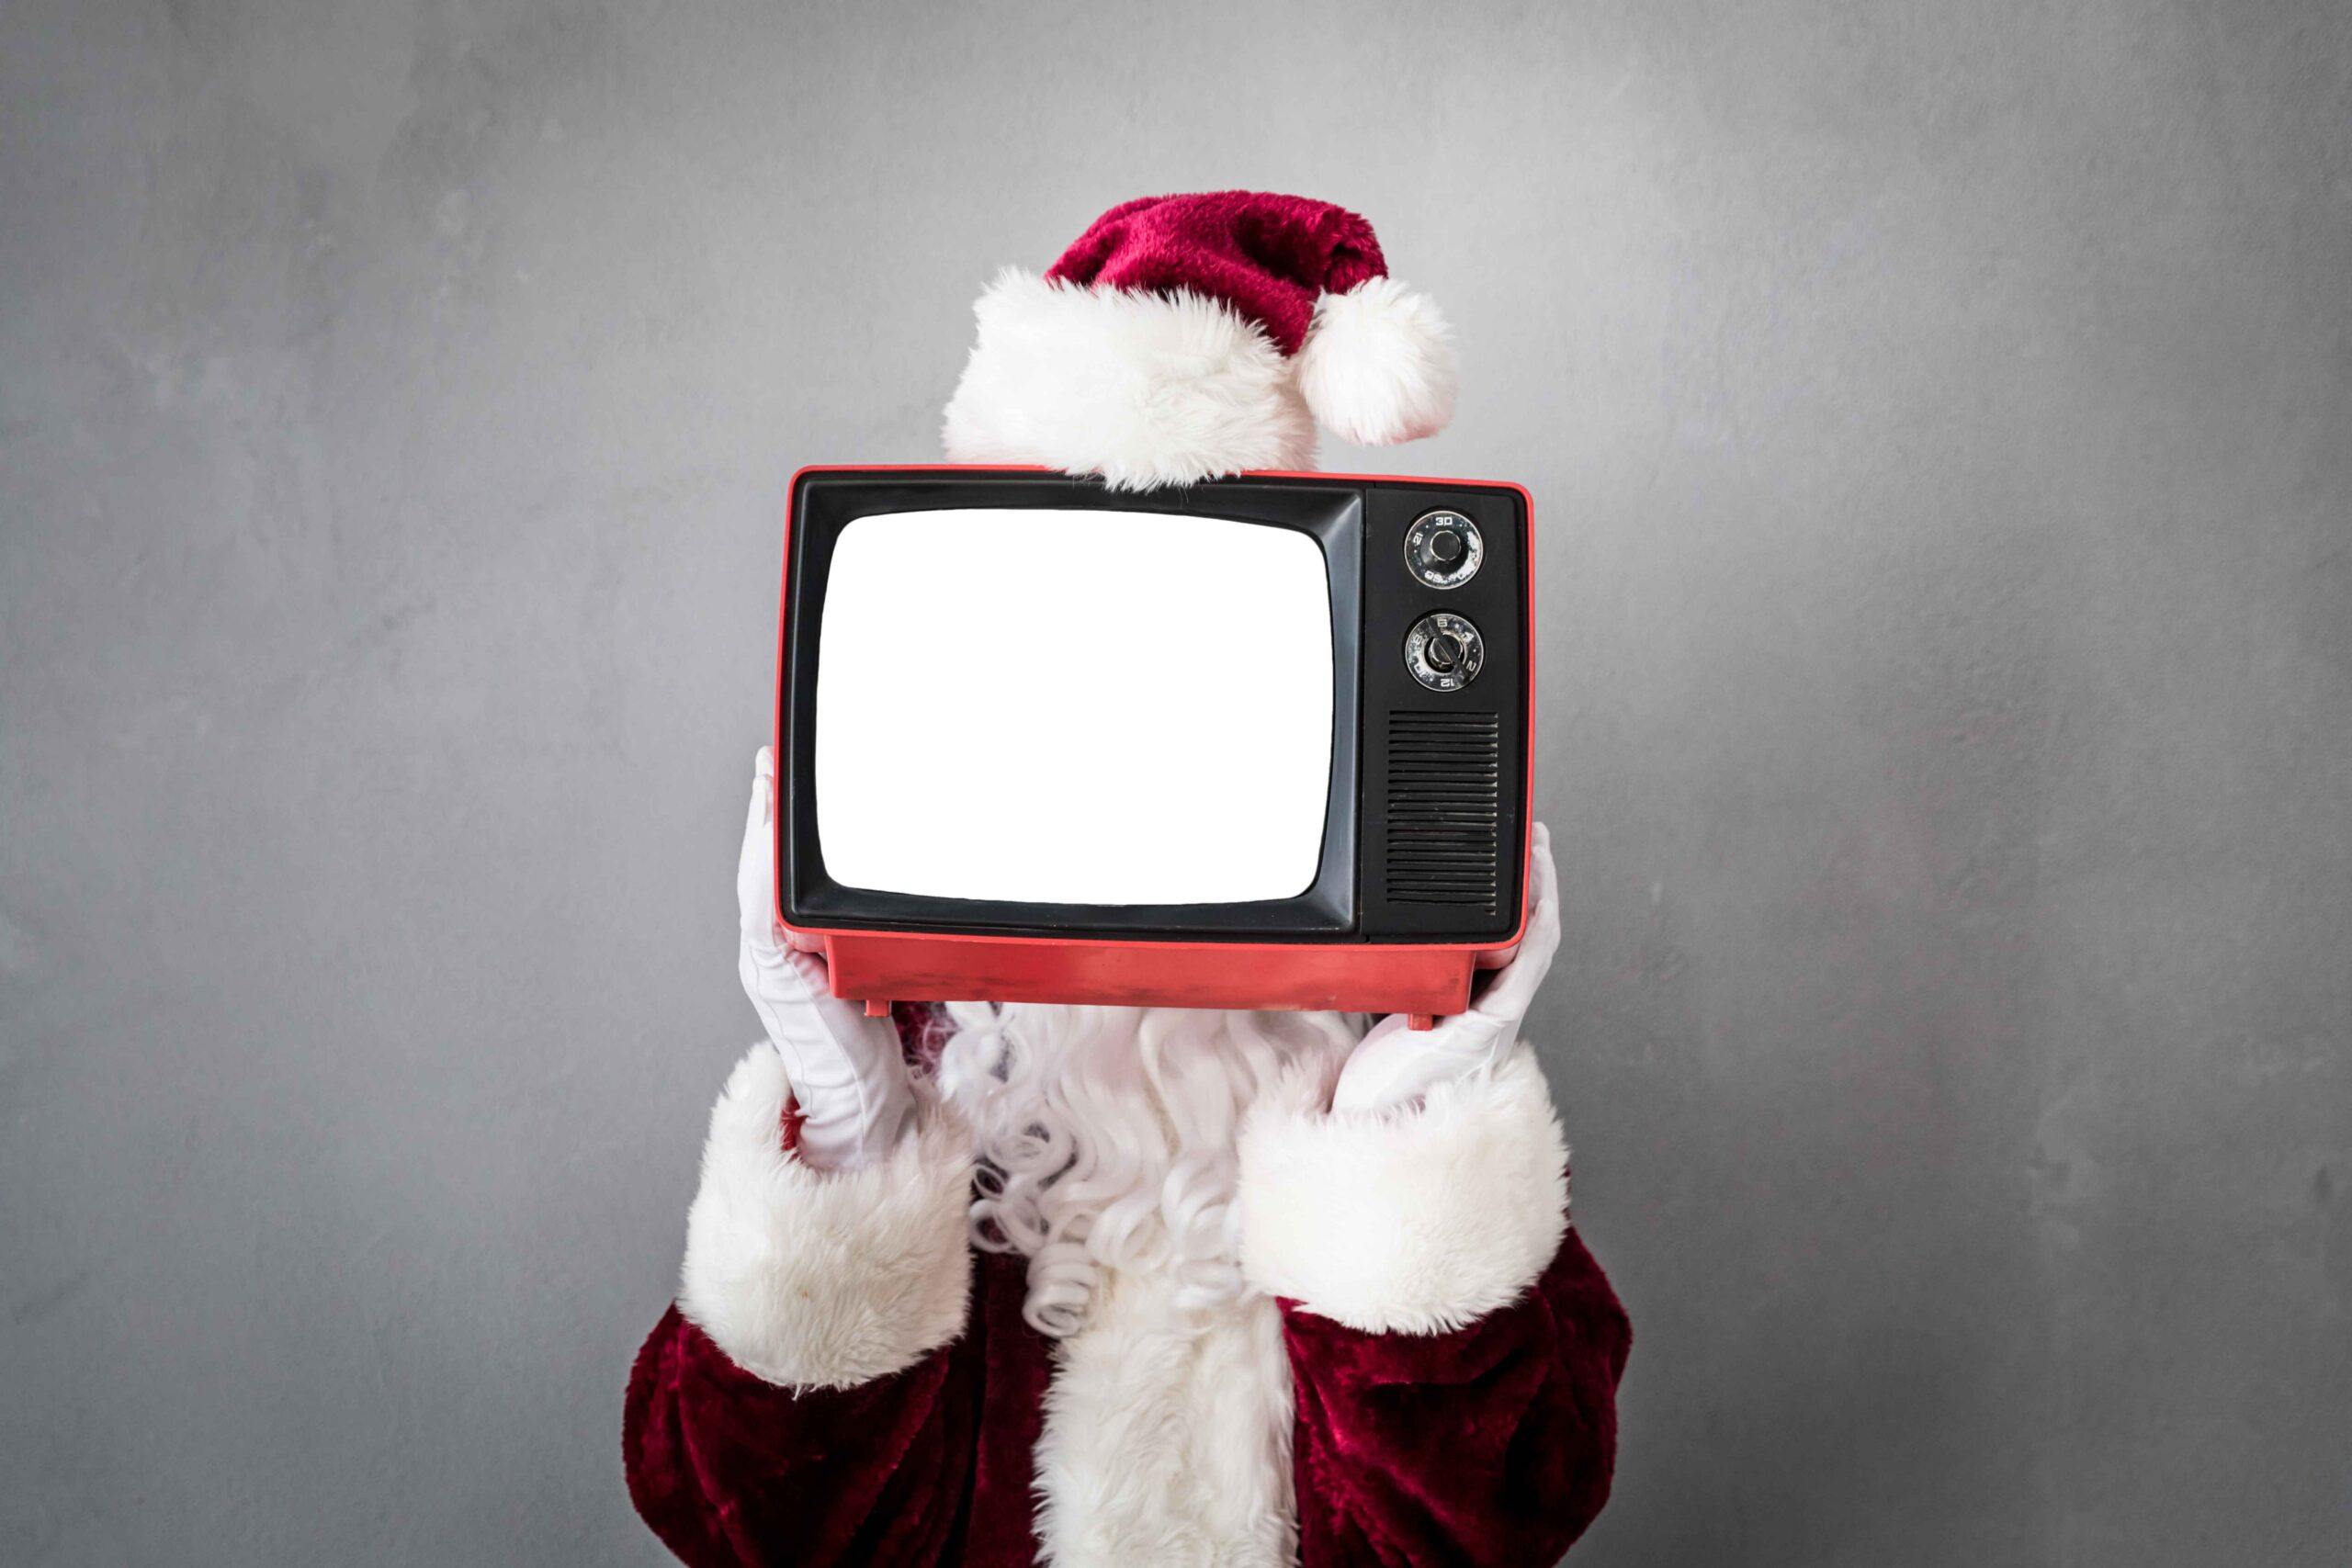 Why do we care about Christmas adverts?